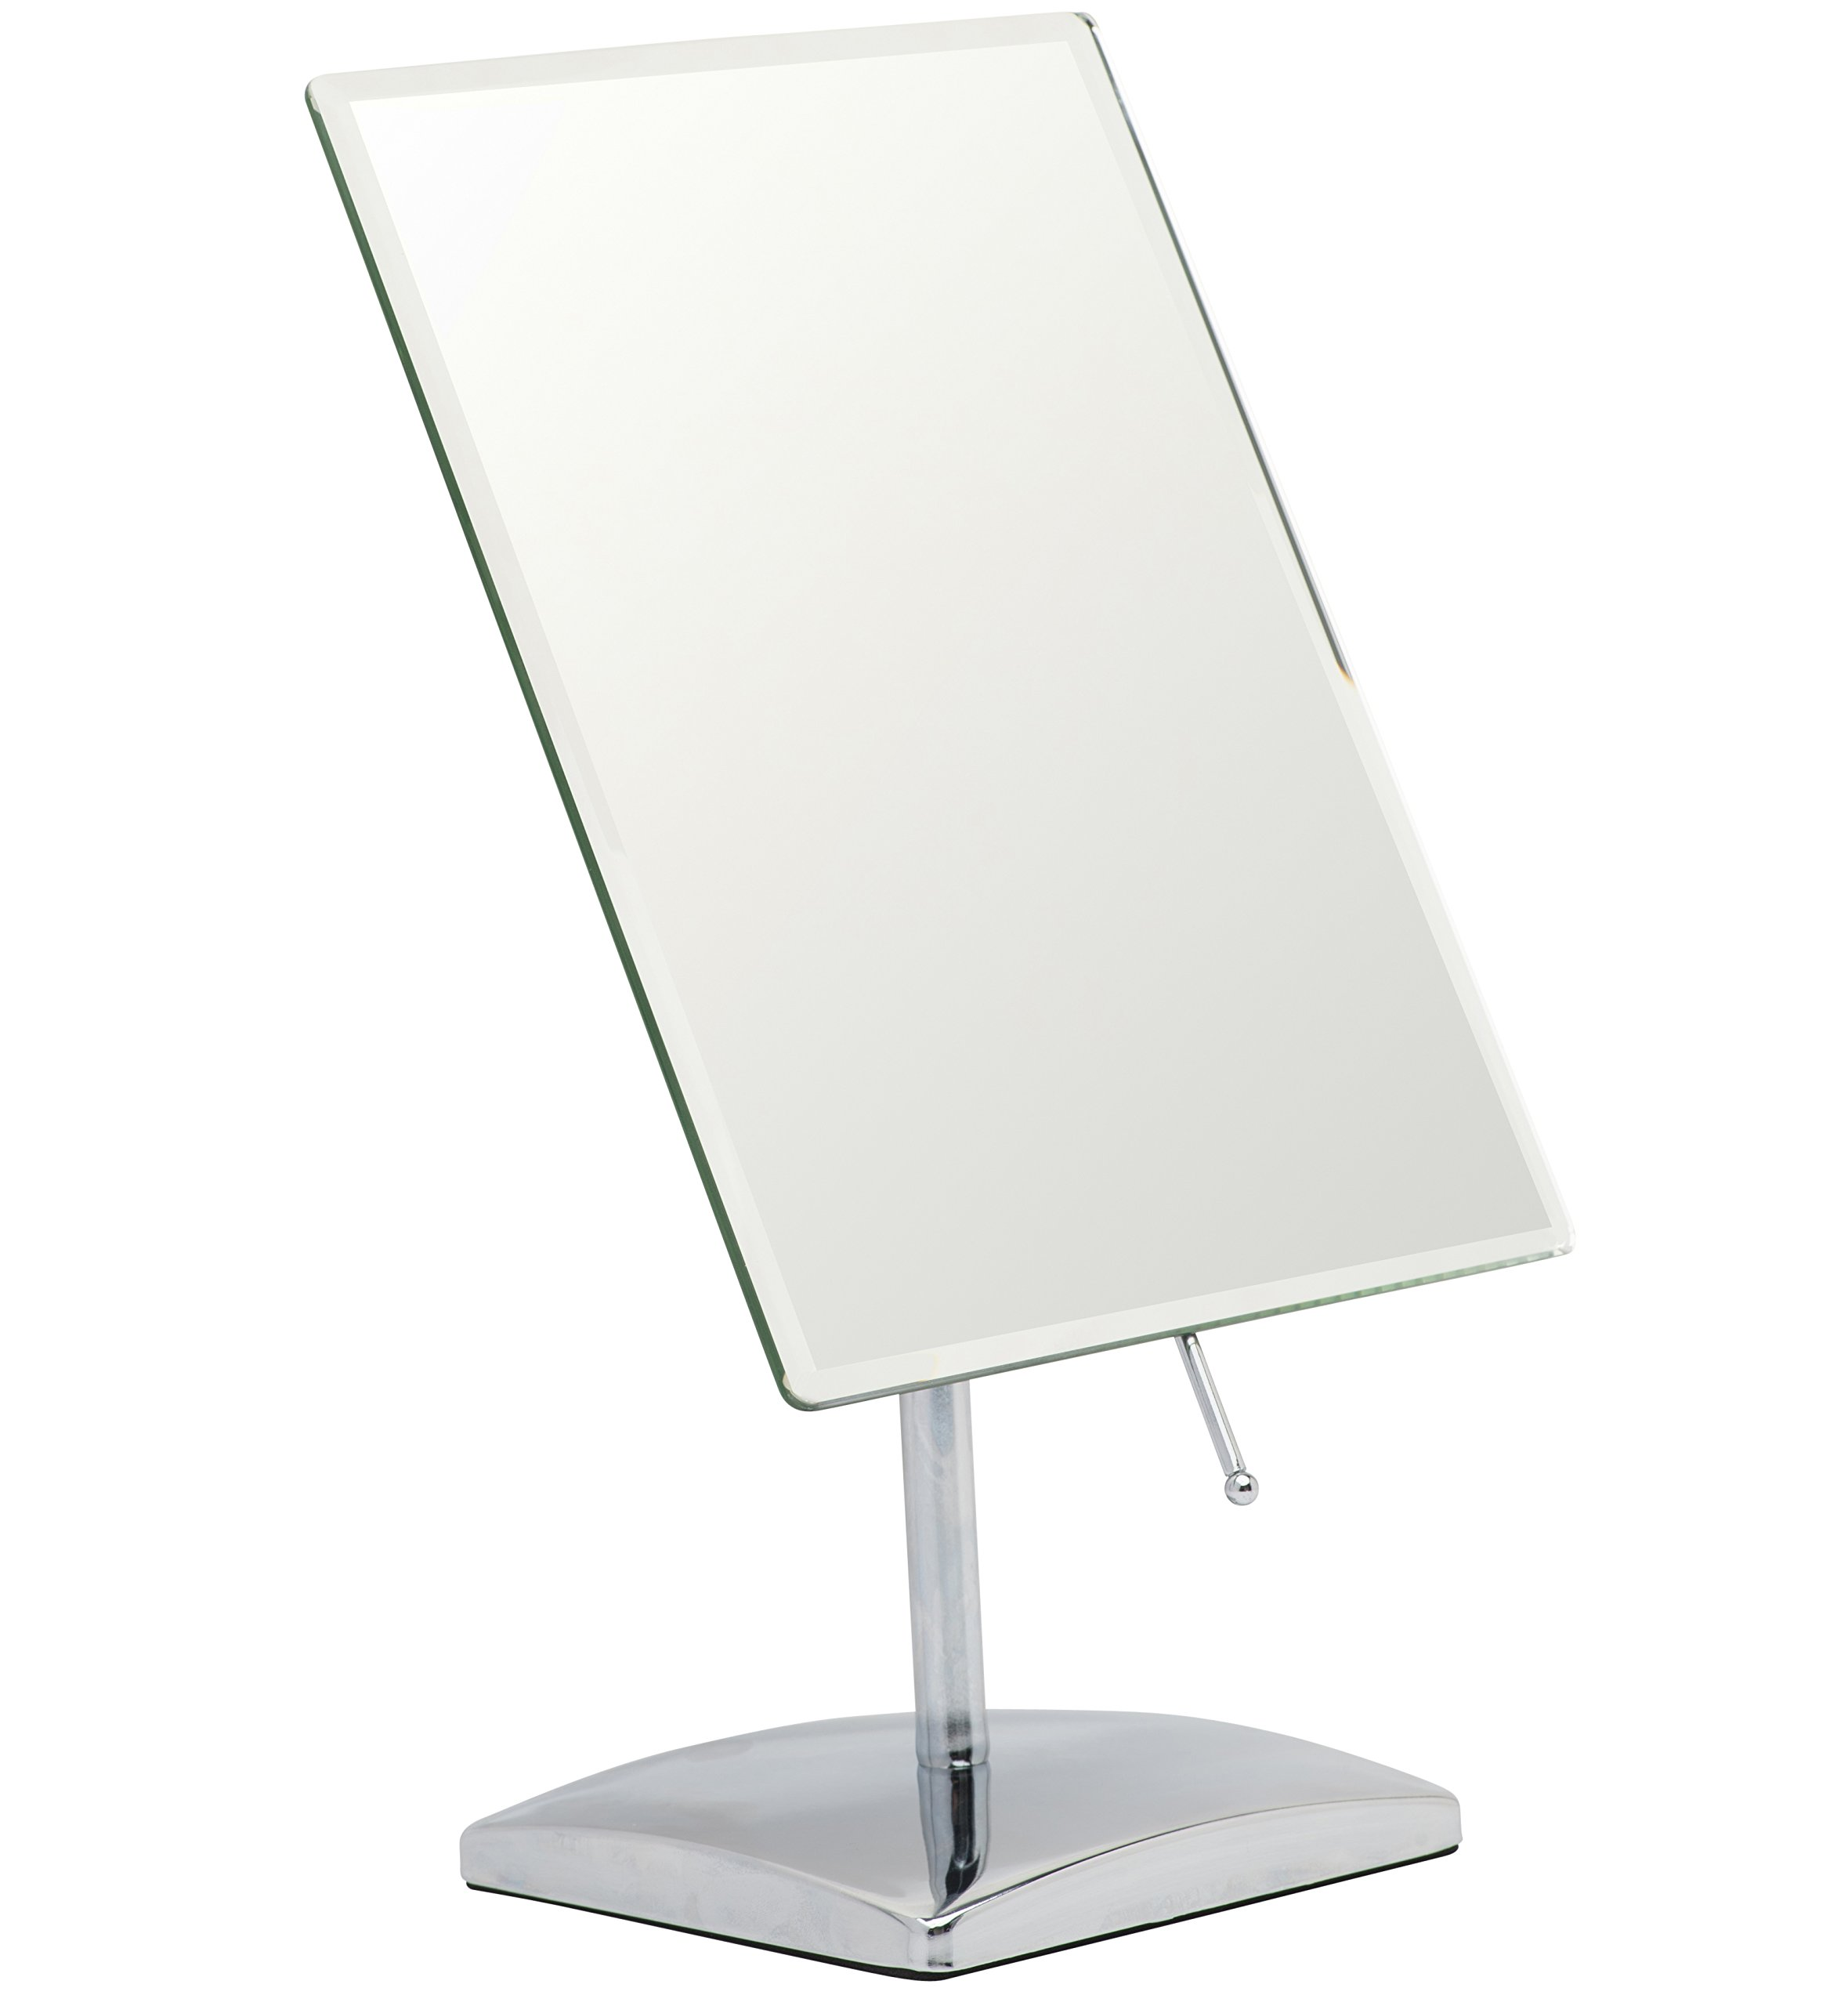 table interesting plus also lighted vanity jerdon with oa for mounted mirror desk makeup direct sale mirrors ikea rectangular light amazon floor wire bulbs mount wall magnification cheery